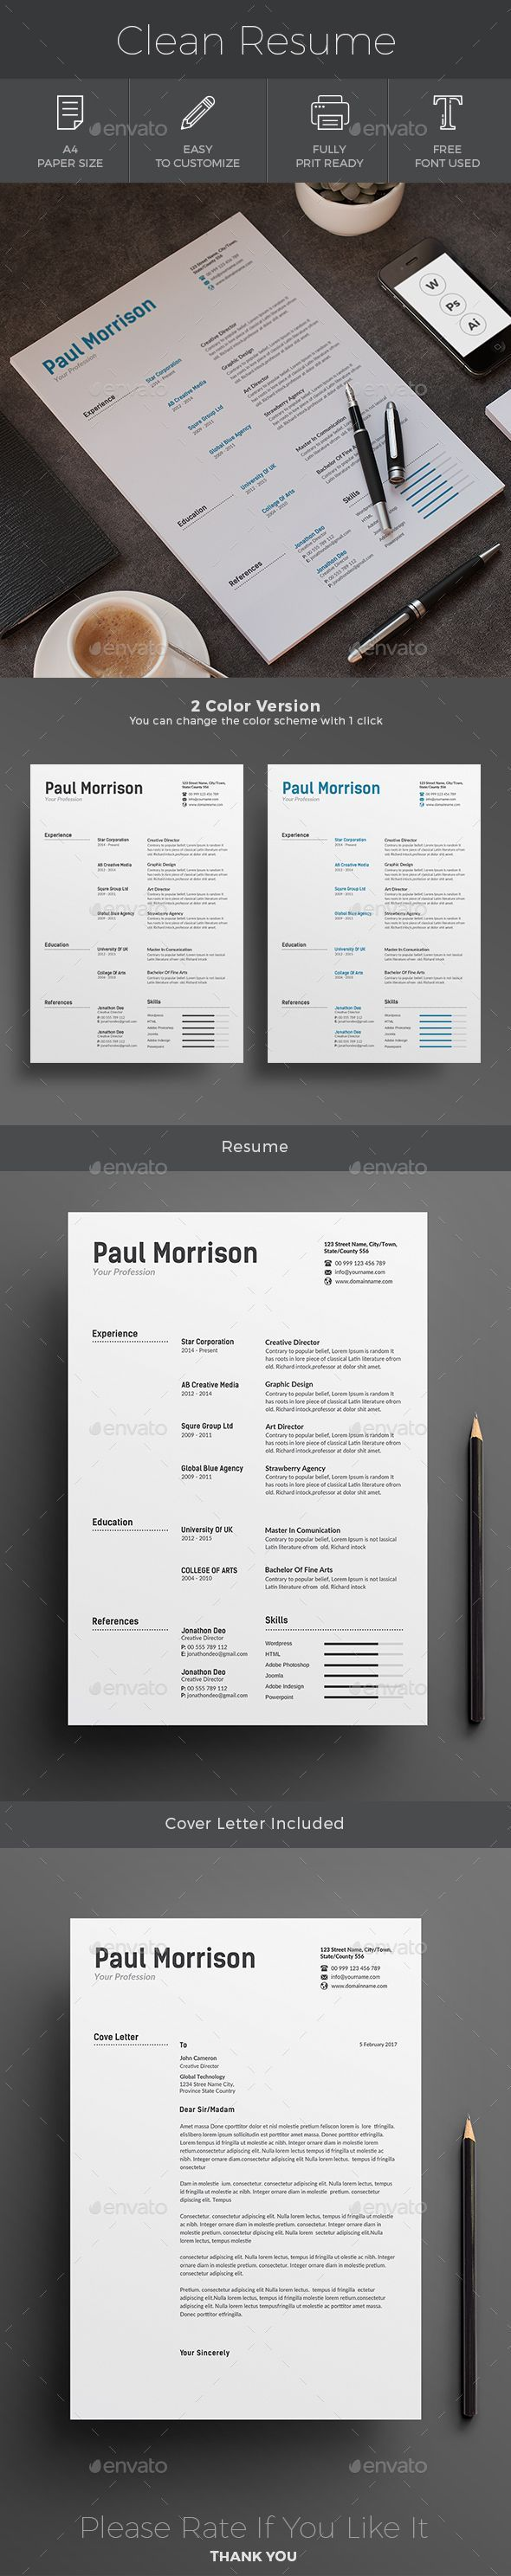 Best Travail Images On   Resume Layout Creative